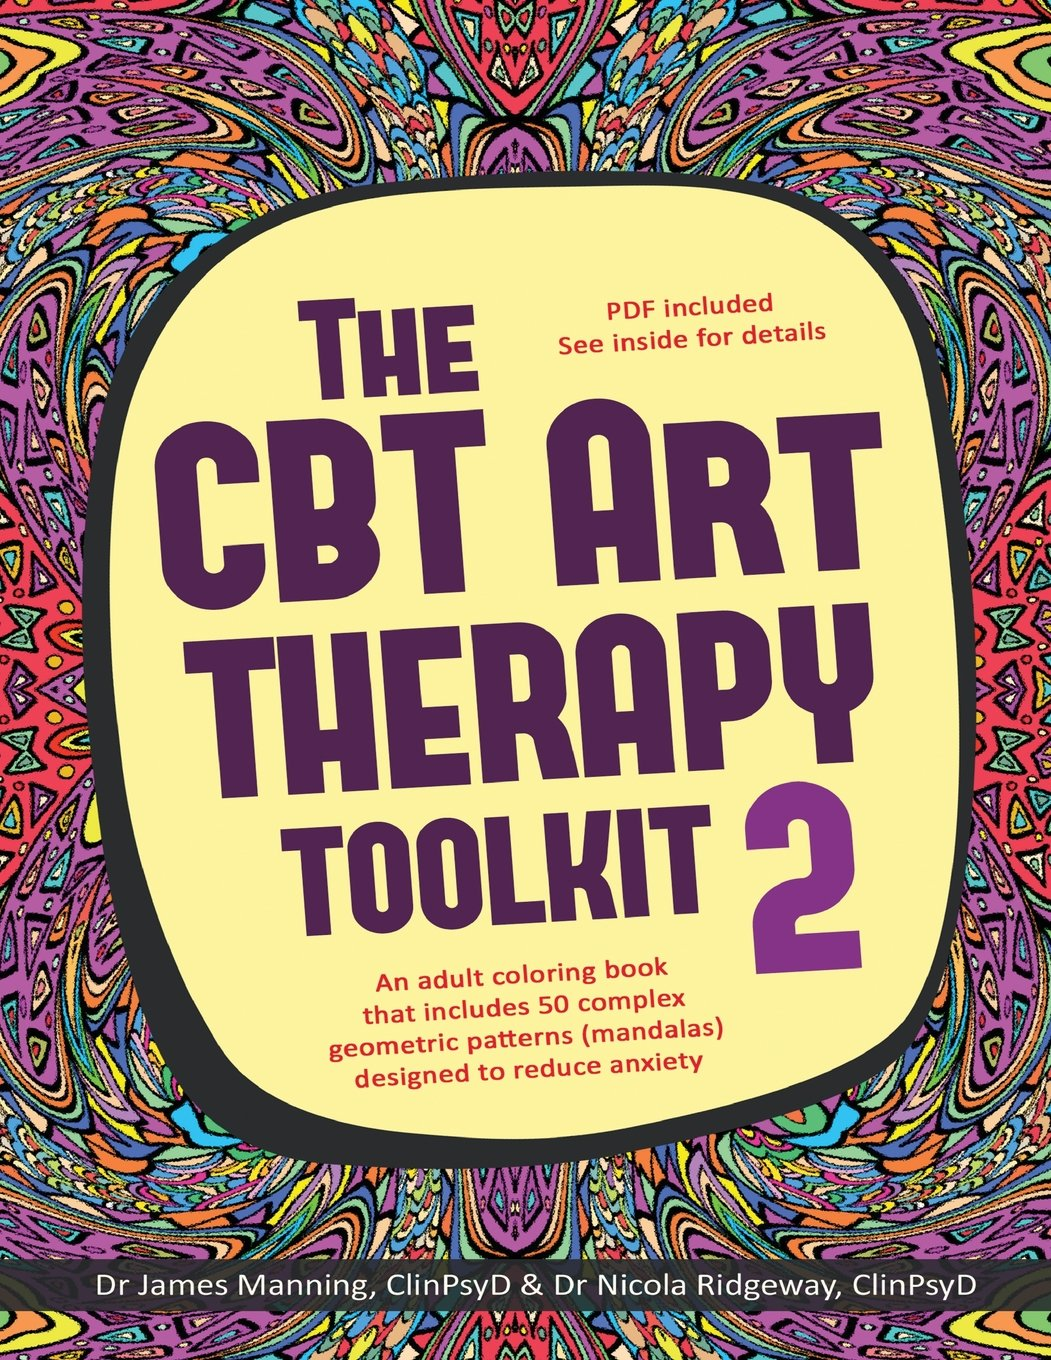 Amazon.com: The CBT Art Therapy Toolkit 2 (Mandalas): An adult coloring book  that includes 50 complex geometric patterns (mandalas) designed to reduce  ...